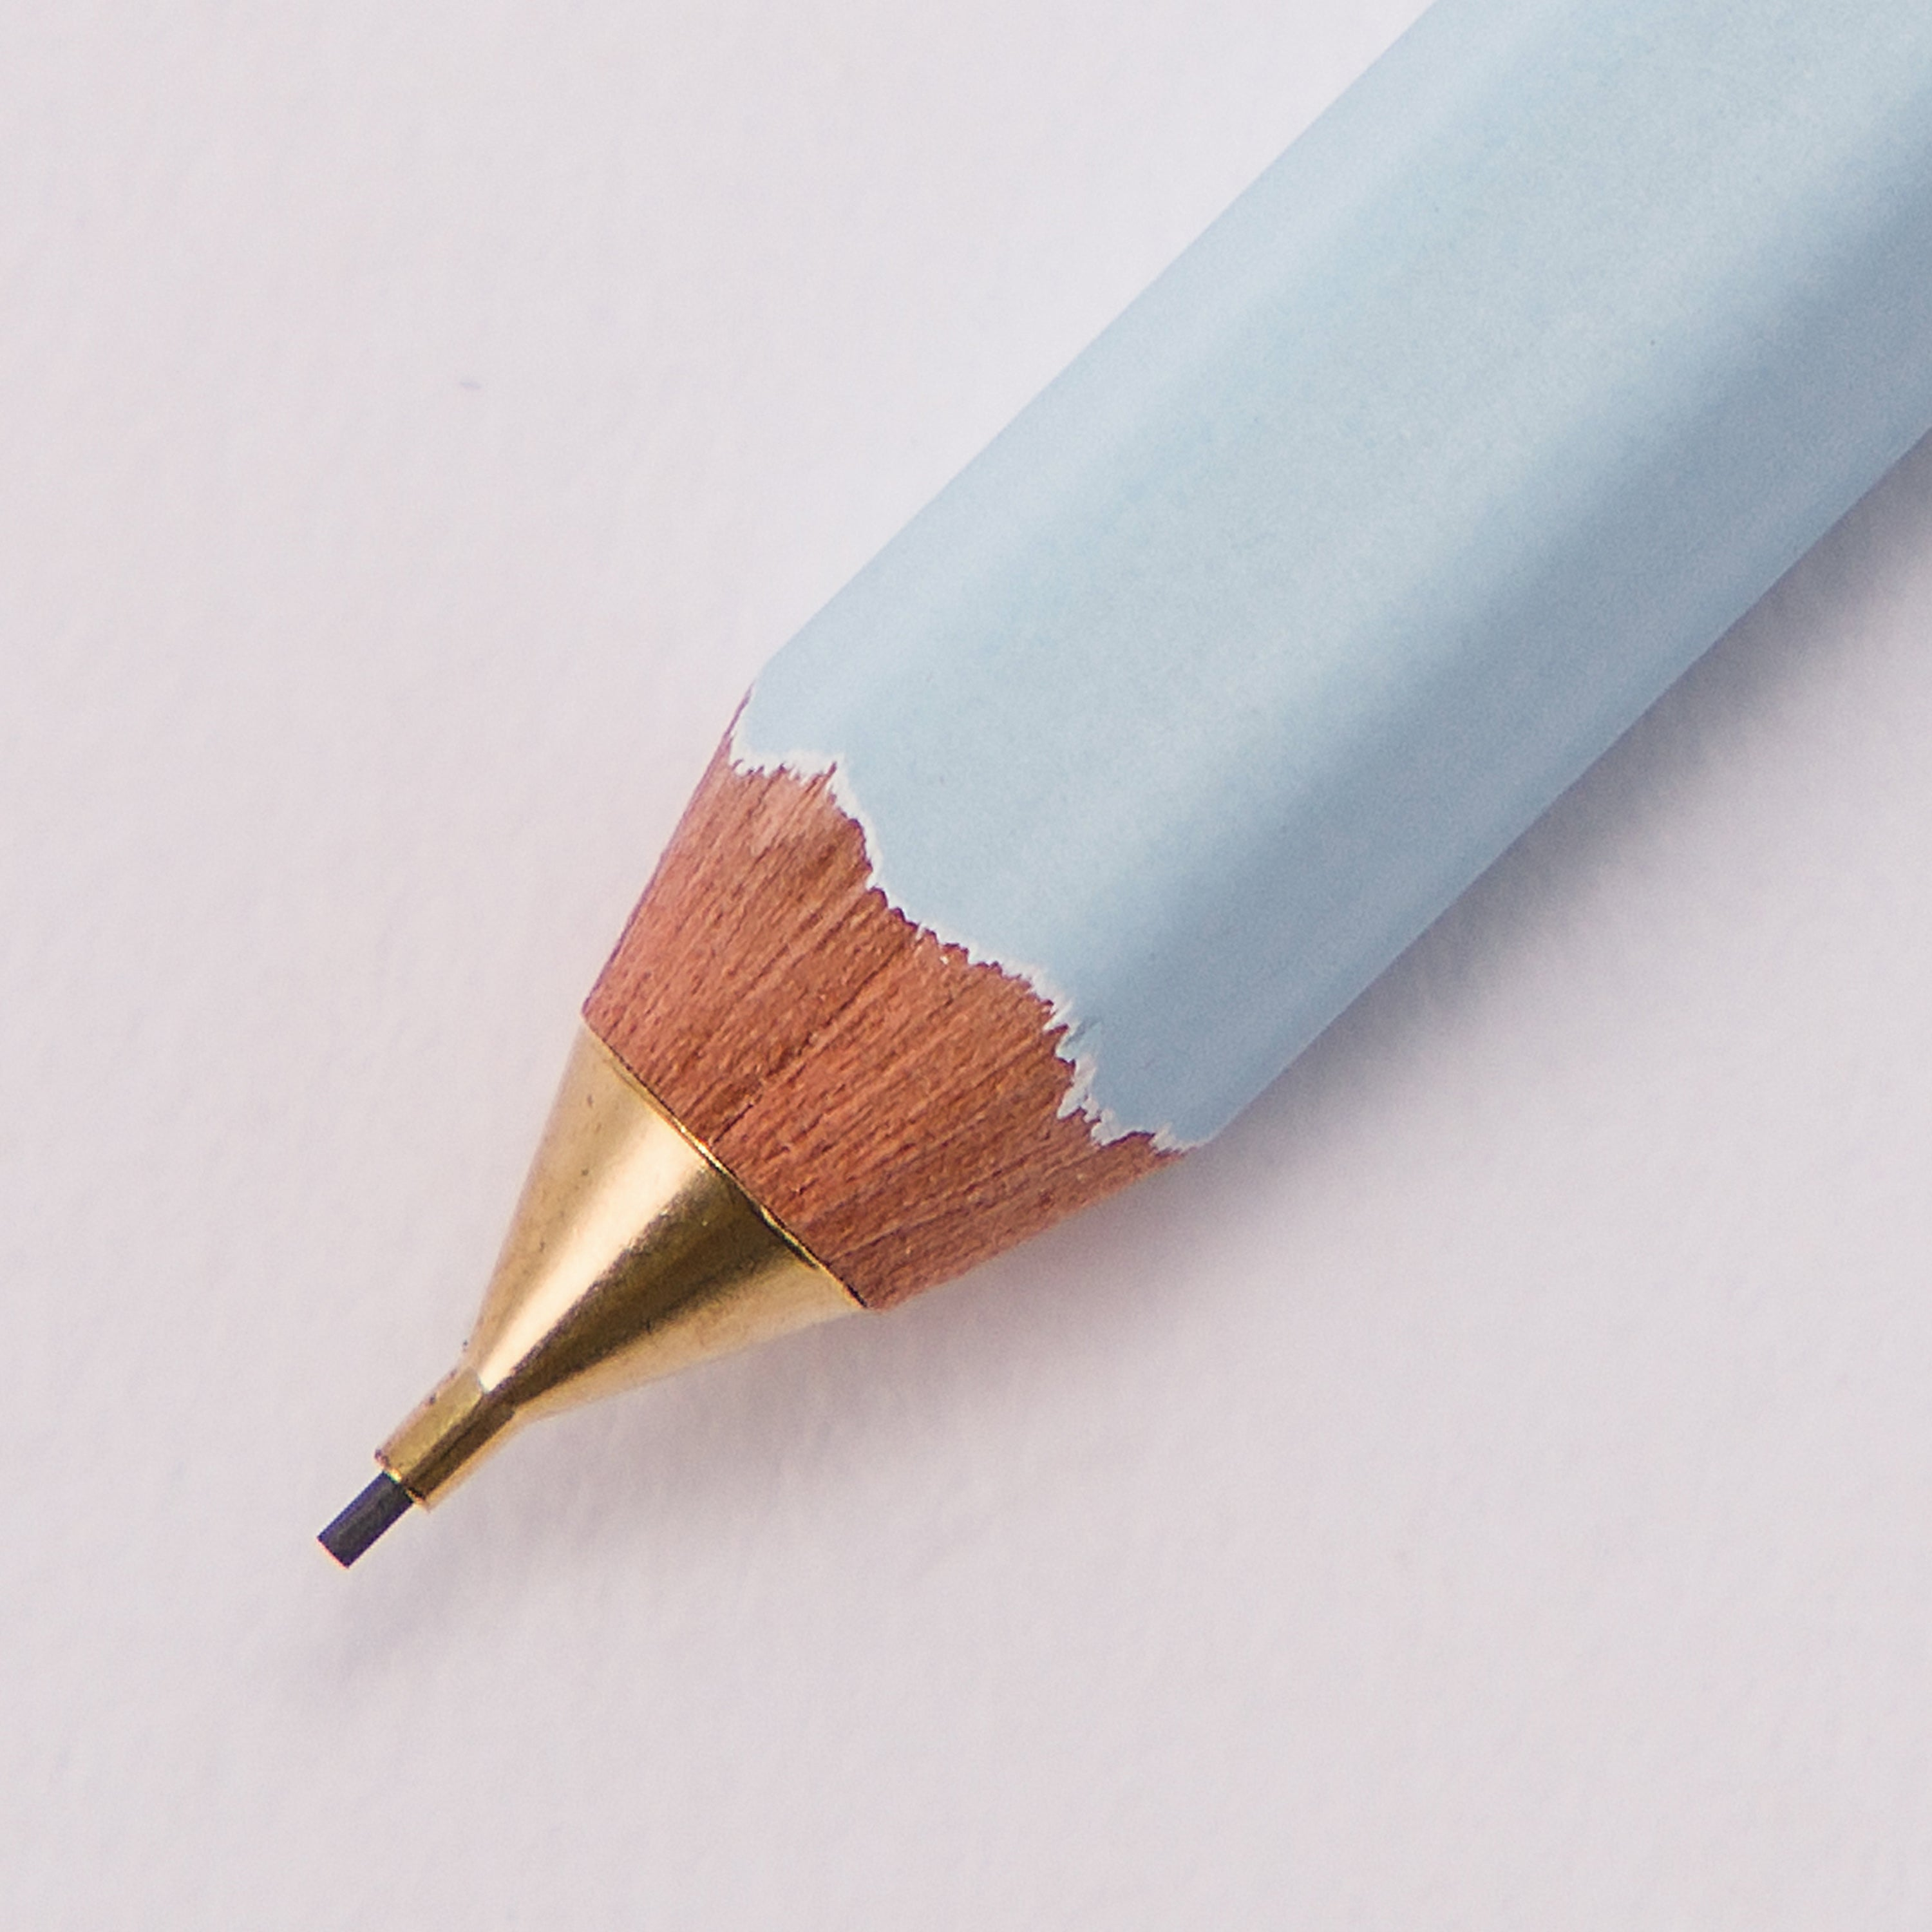 DAY Mechanical Pencil with Eraser / Light Blue